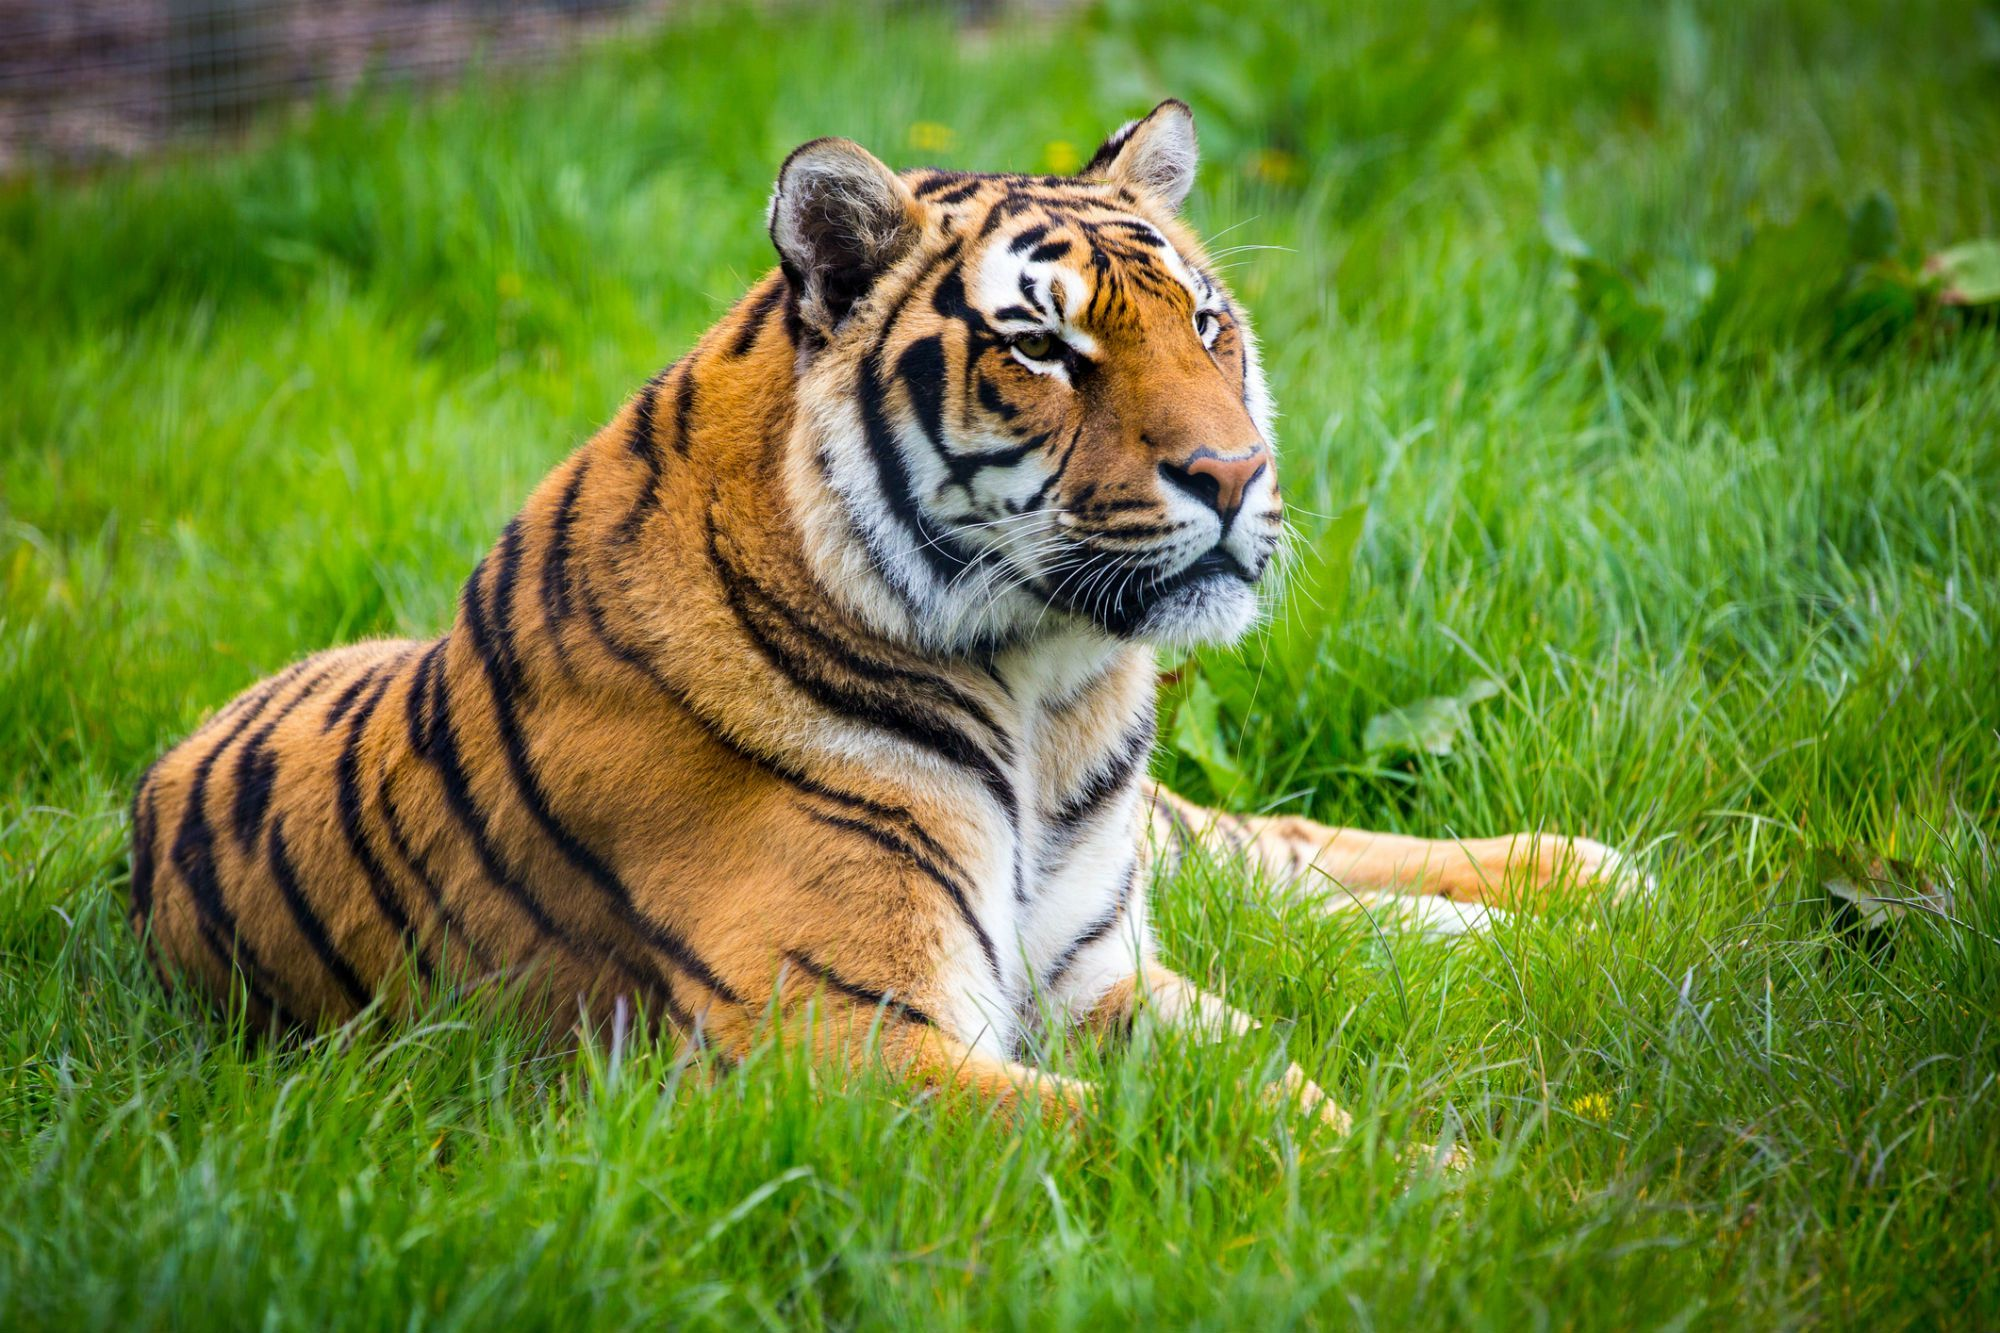 Tiger Images Free Download Beautiful Tiger Latest HD